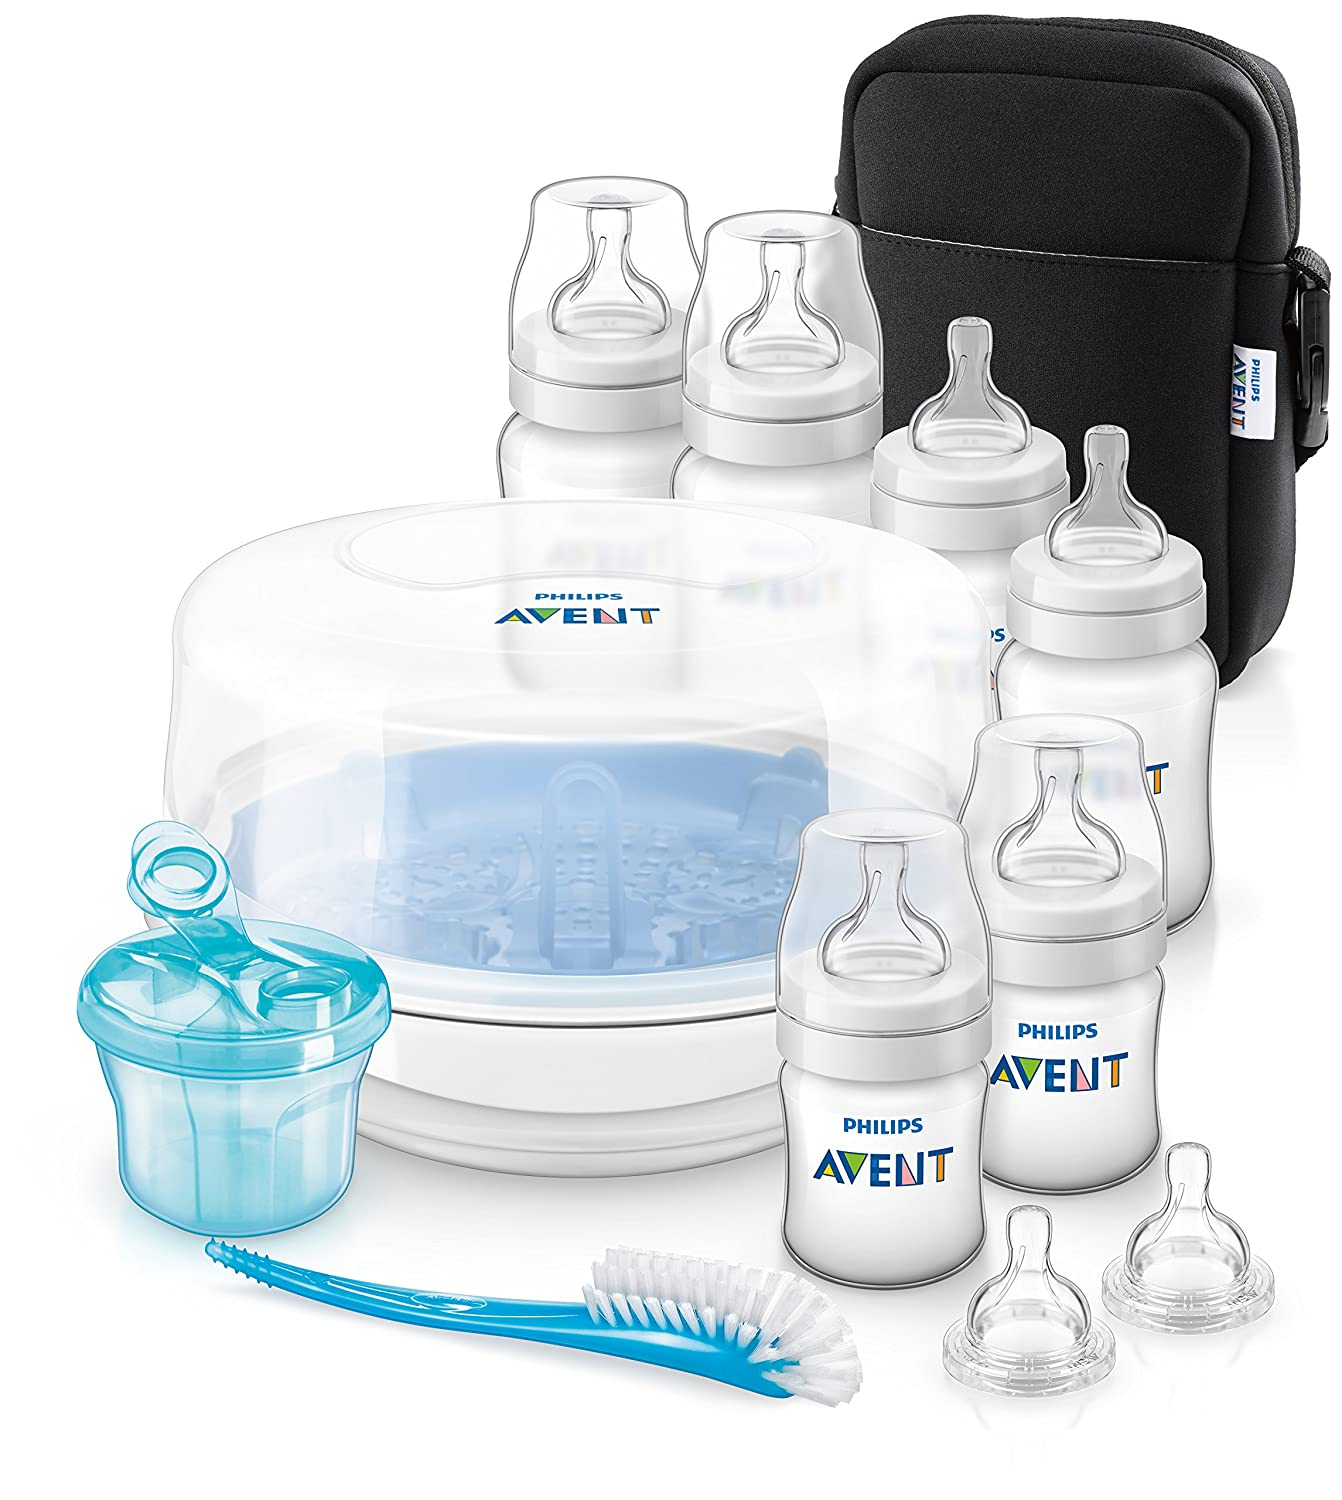 Philips Avent Classic+ Bottle Feeding Essential Set SCD383/01